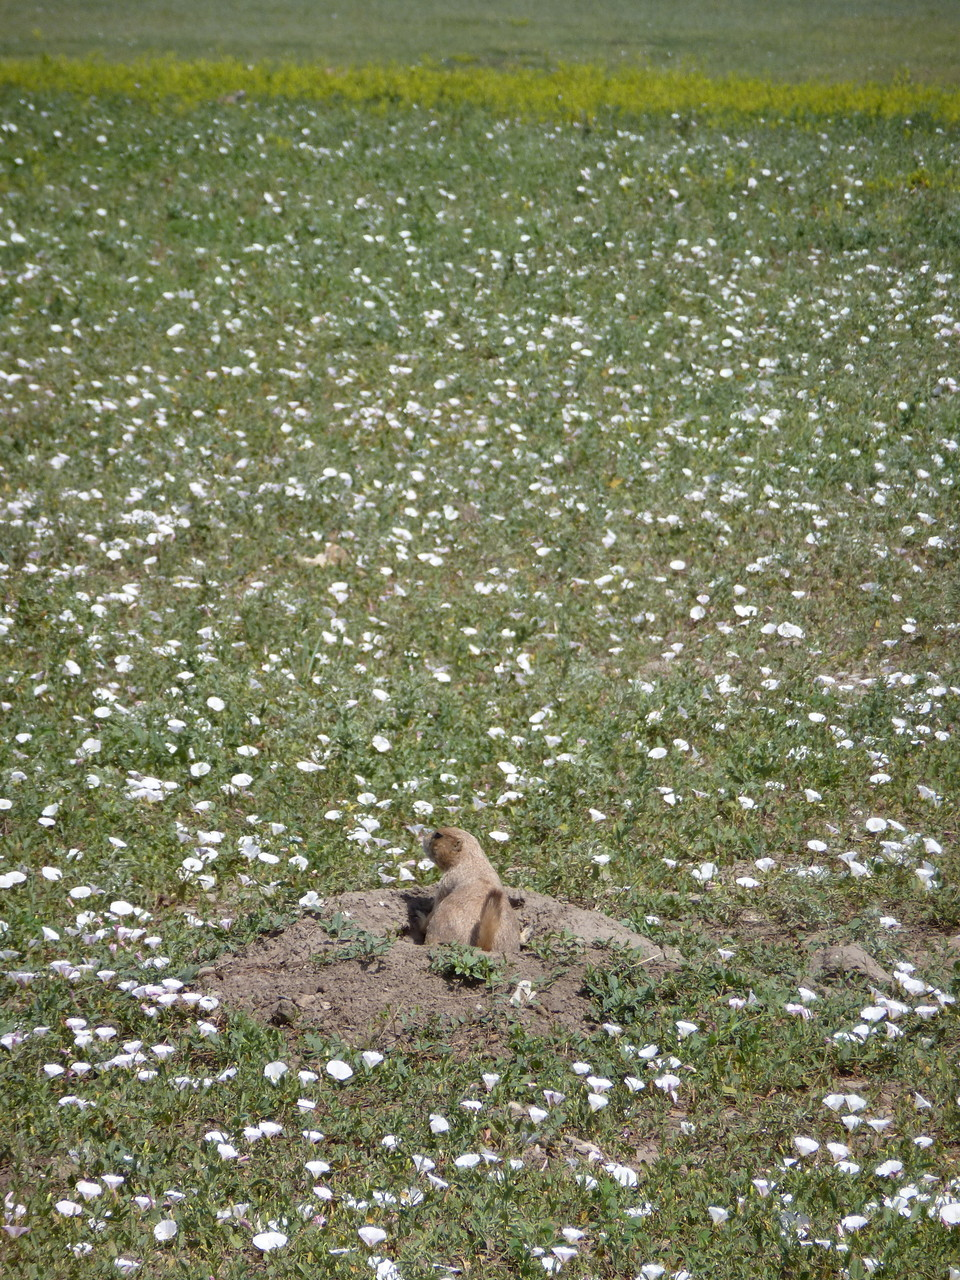 And the prairie dog?